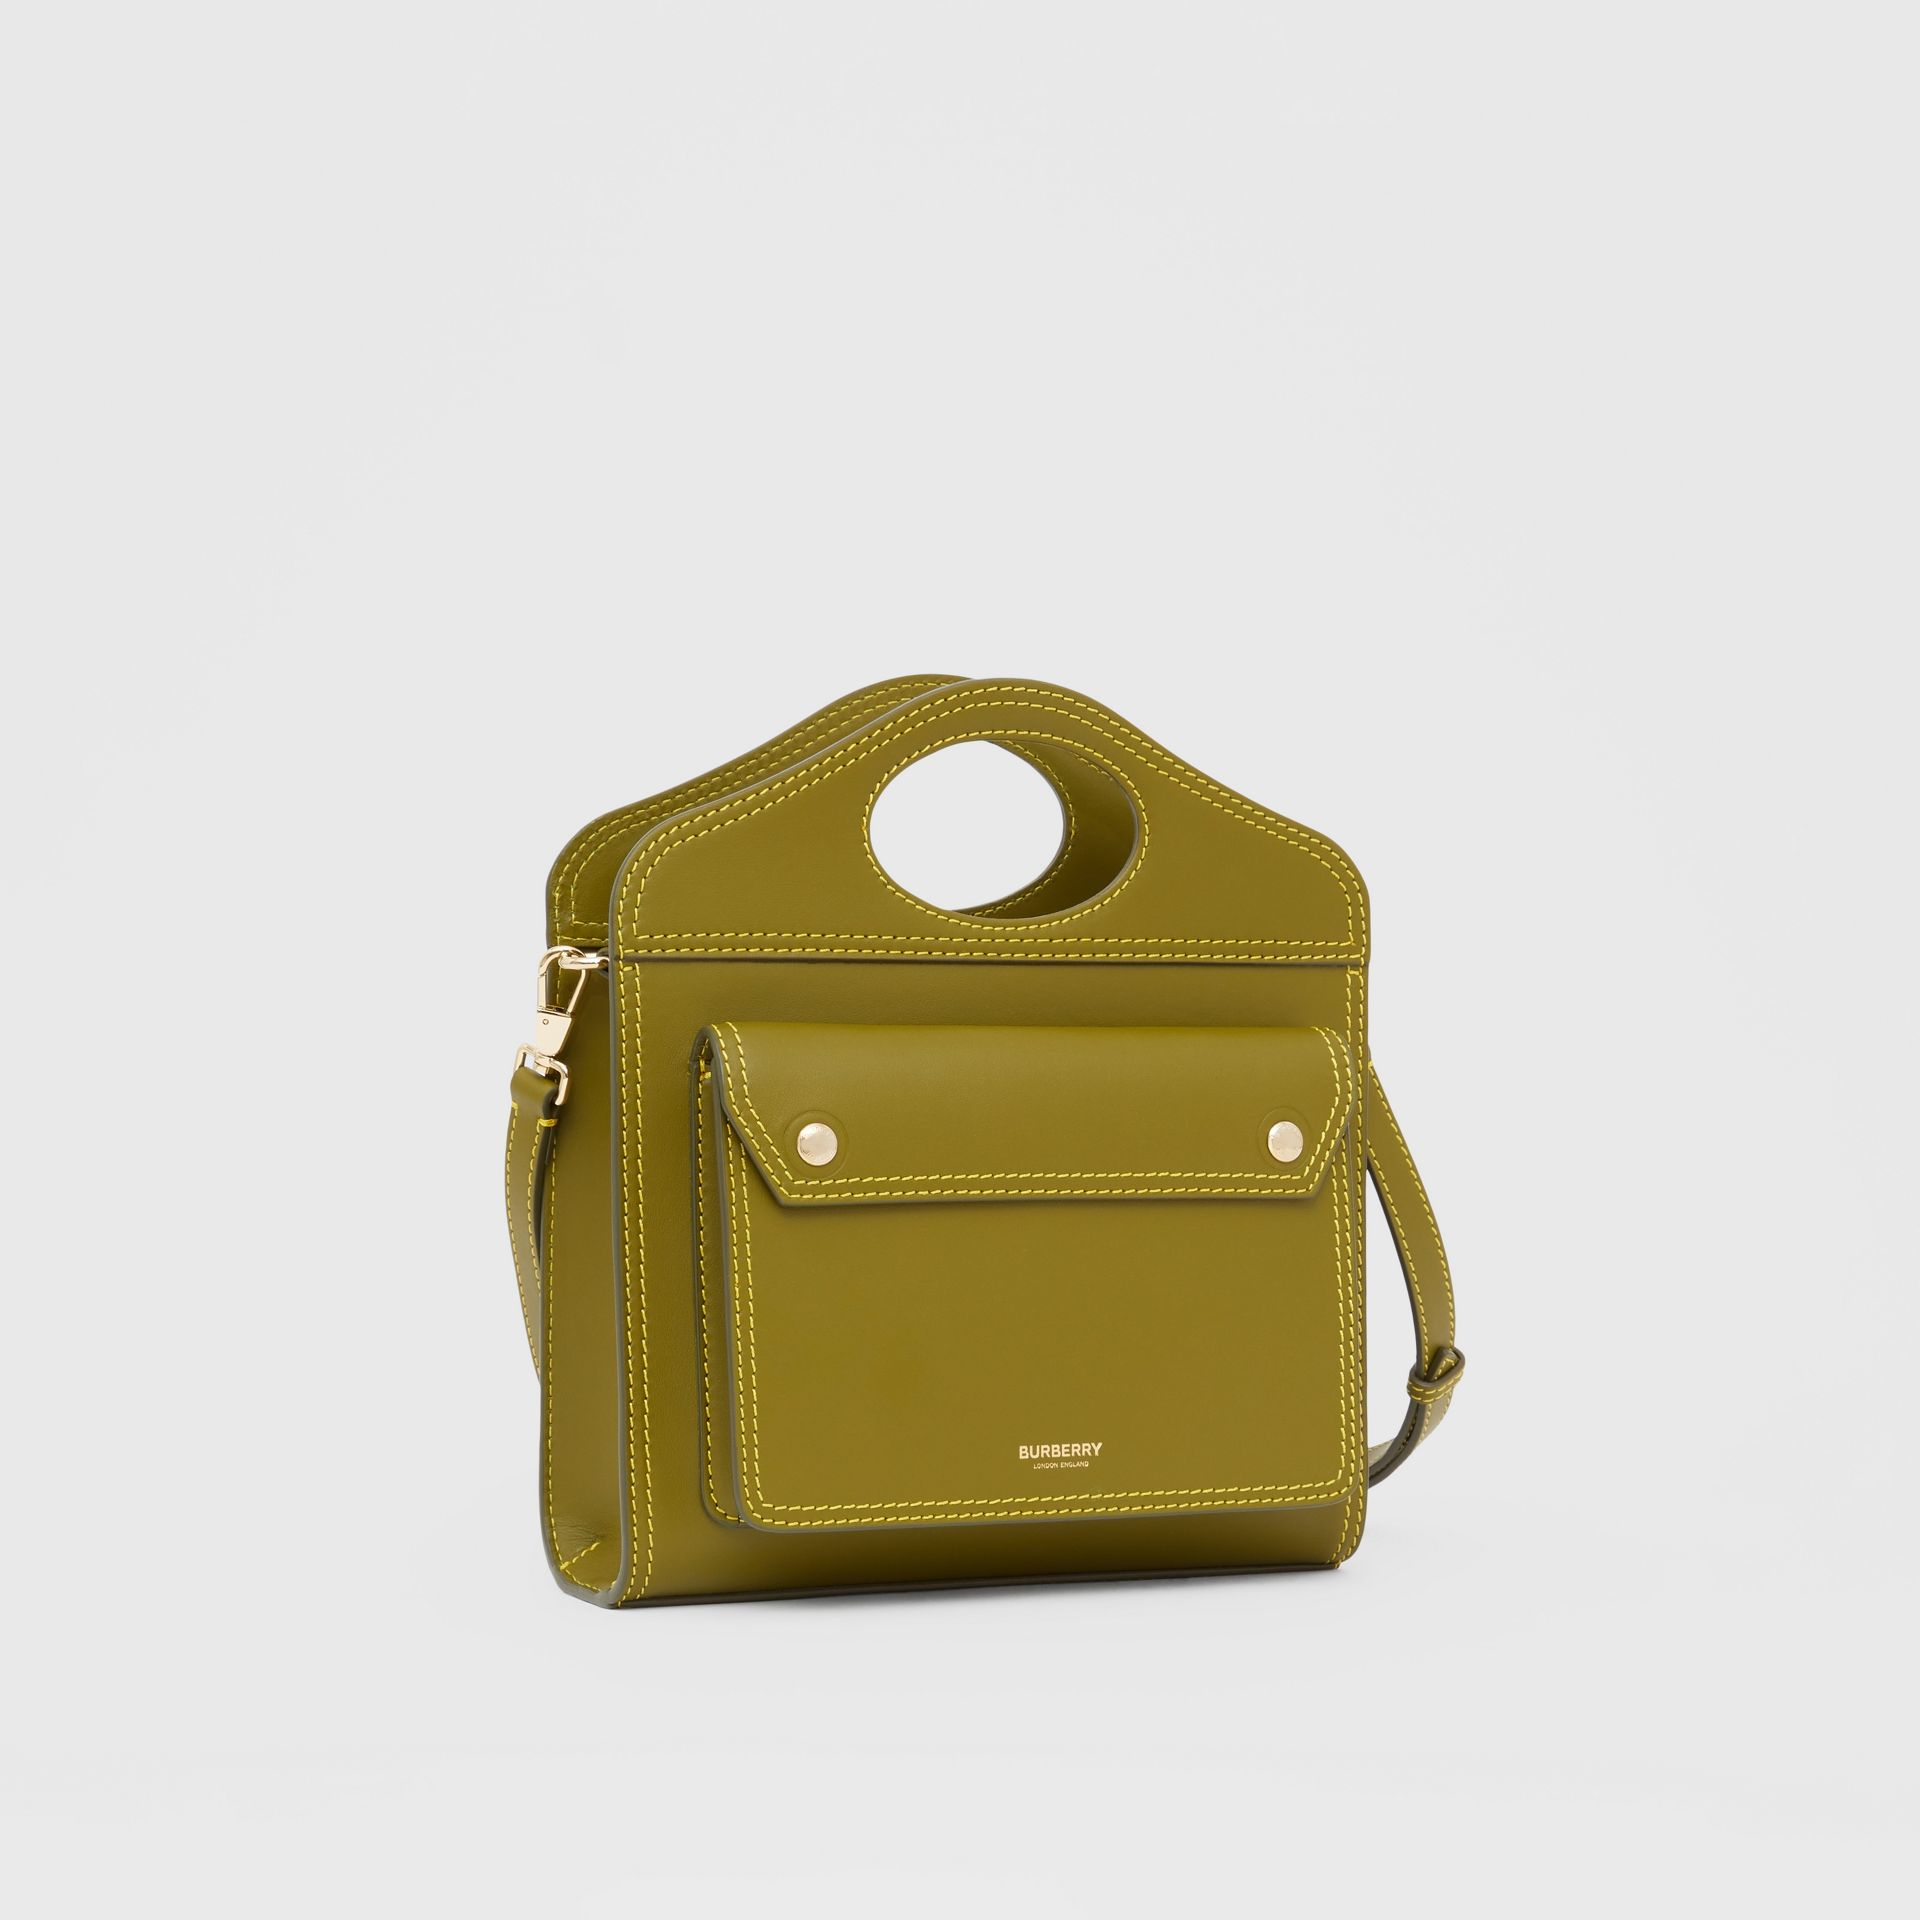 Mini sac Pocket en cuir surpiqué (Vert Genévrier) - Femme | Burberry Canada - photo de la galerie 6